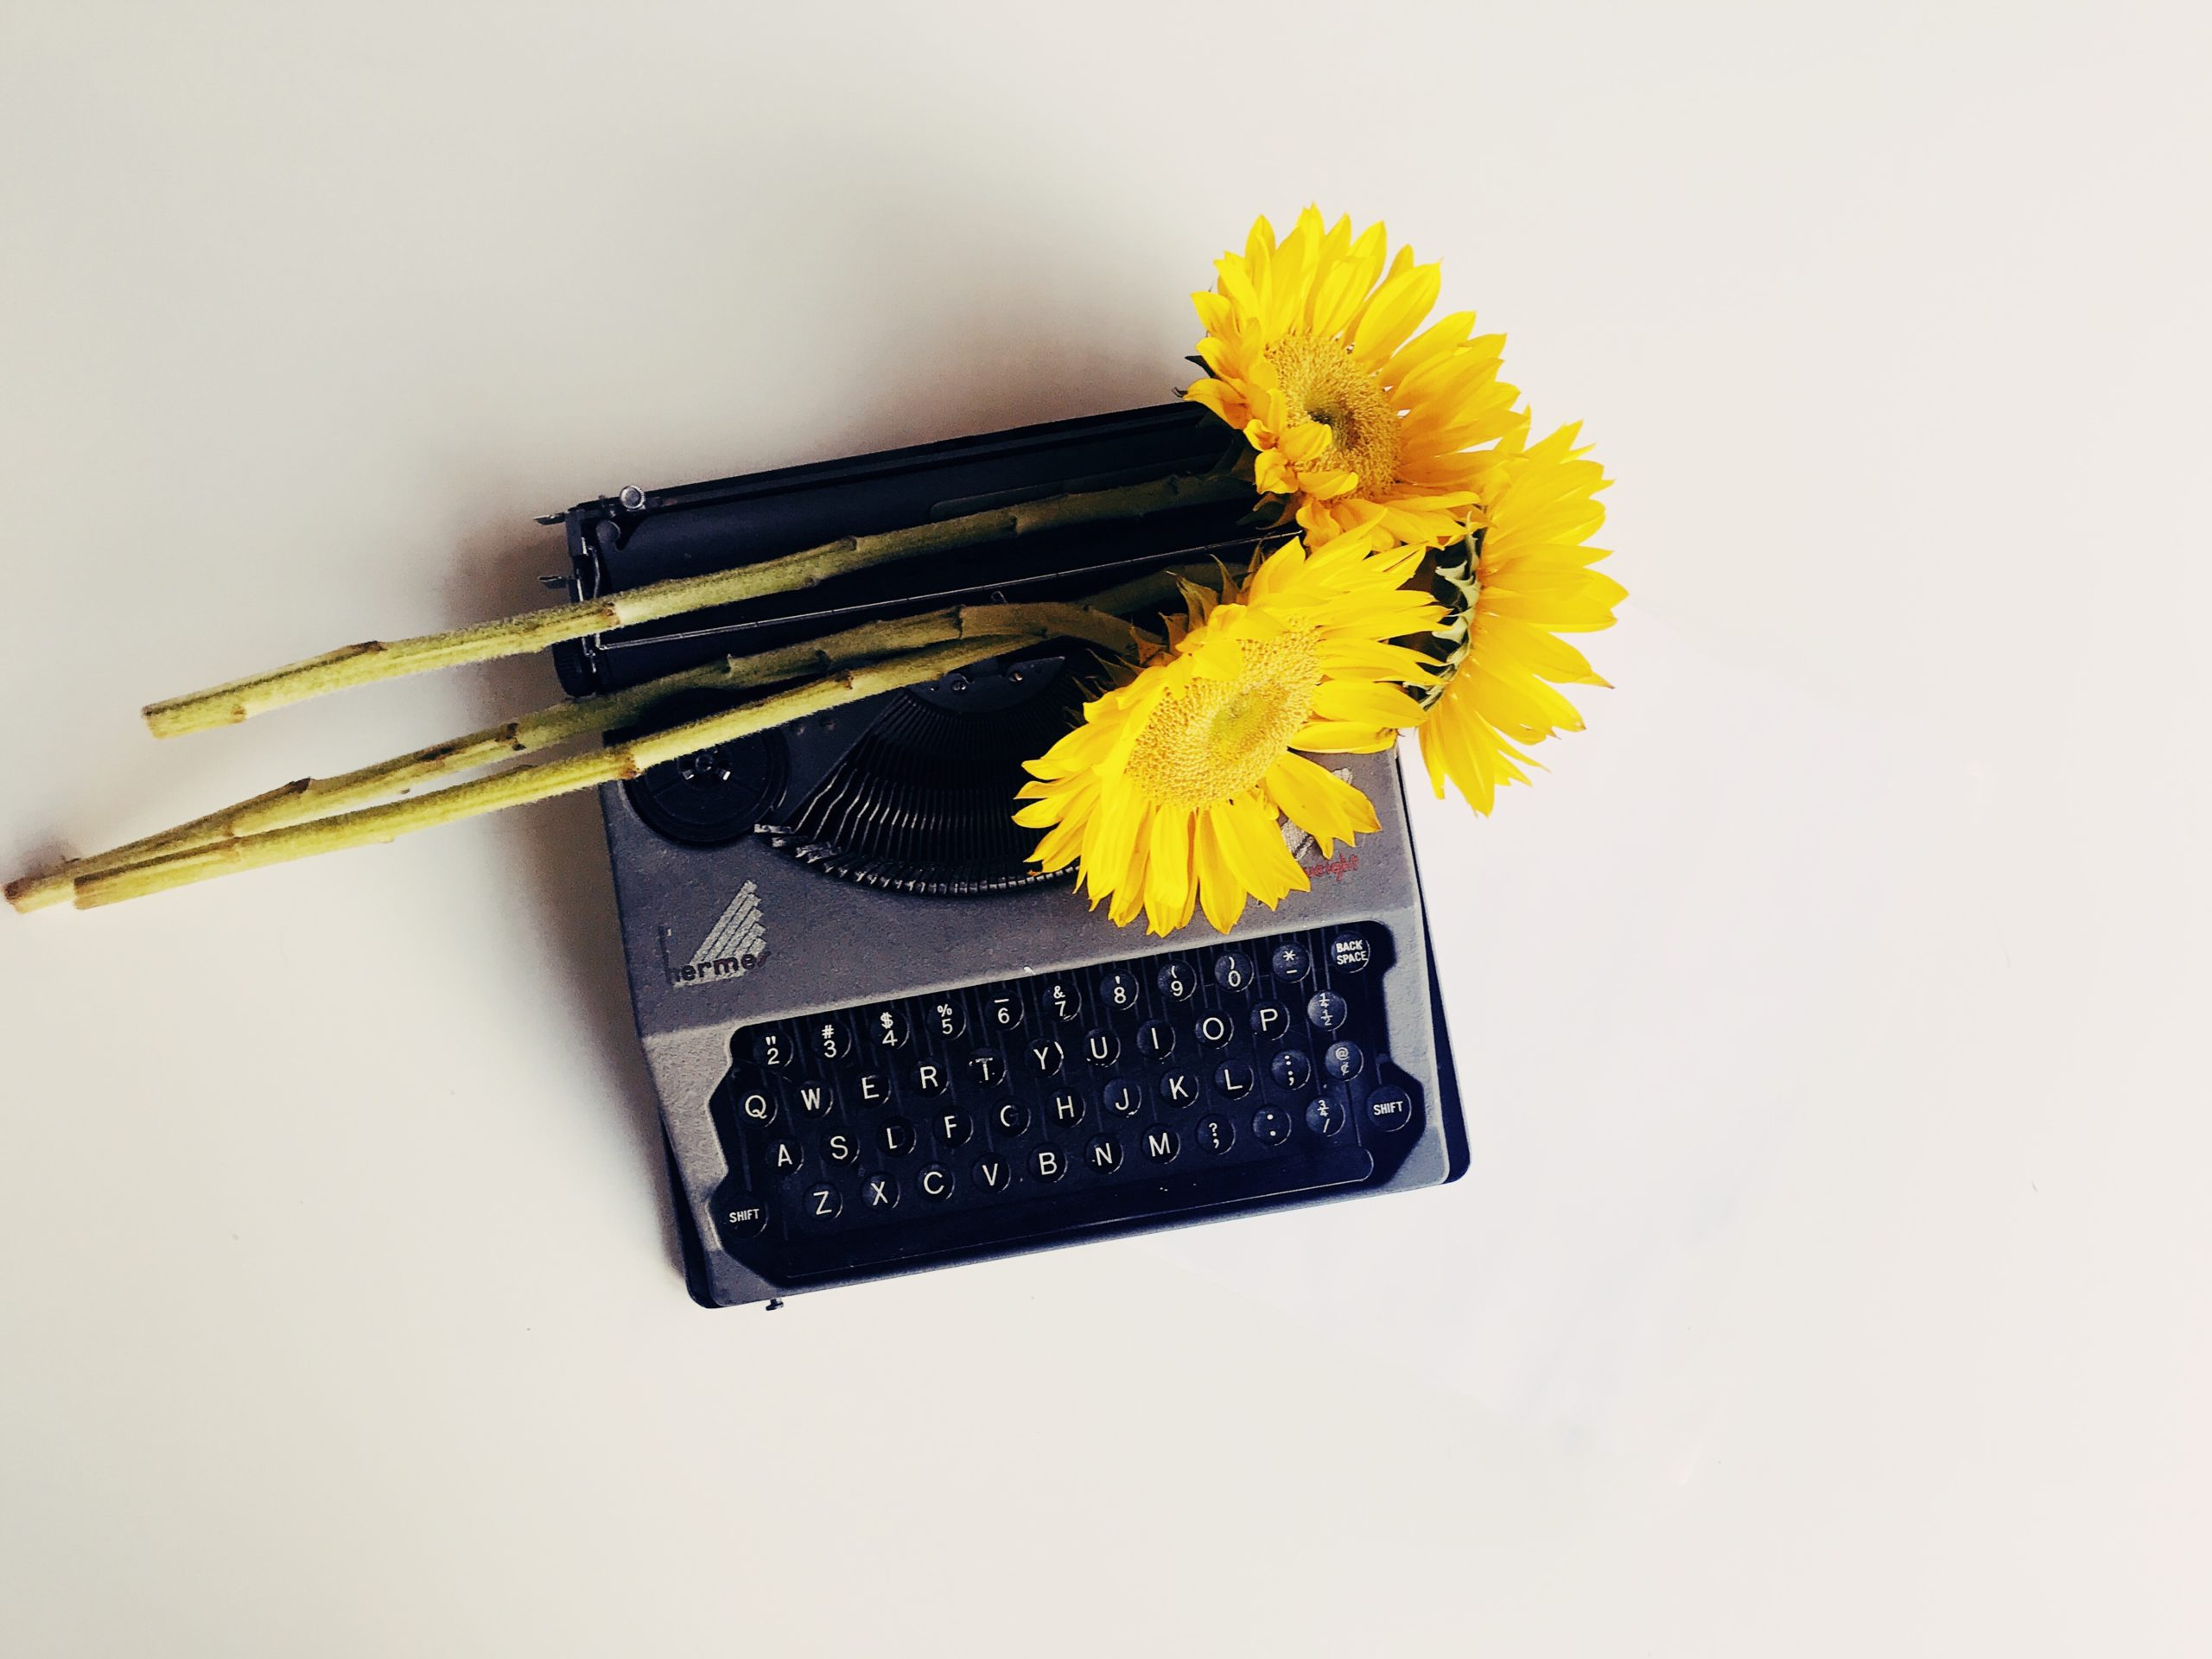 A black typewriter with yellow sunflowers set on top of it, all on a plain taupe background